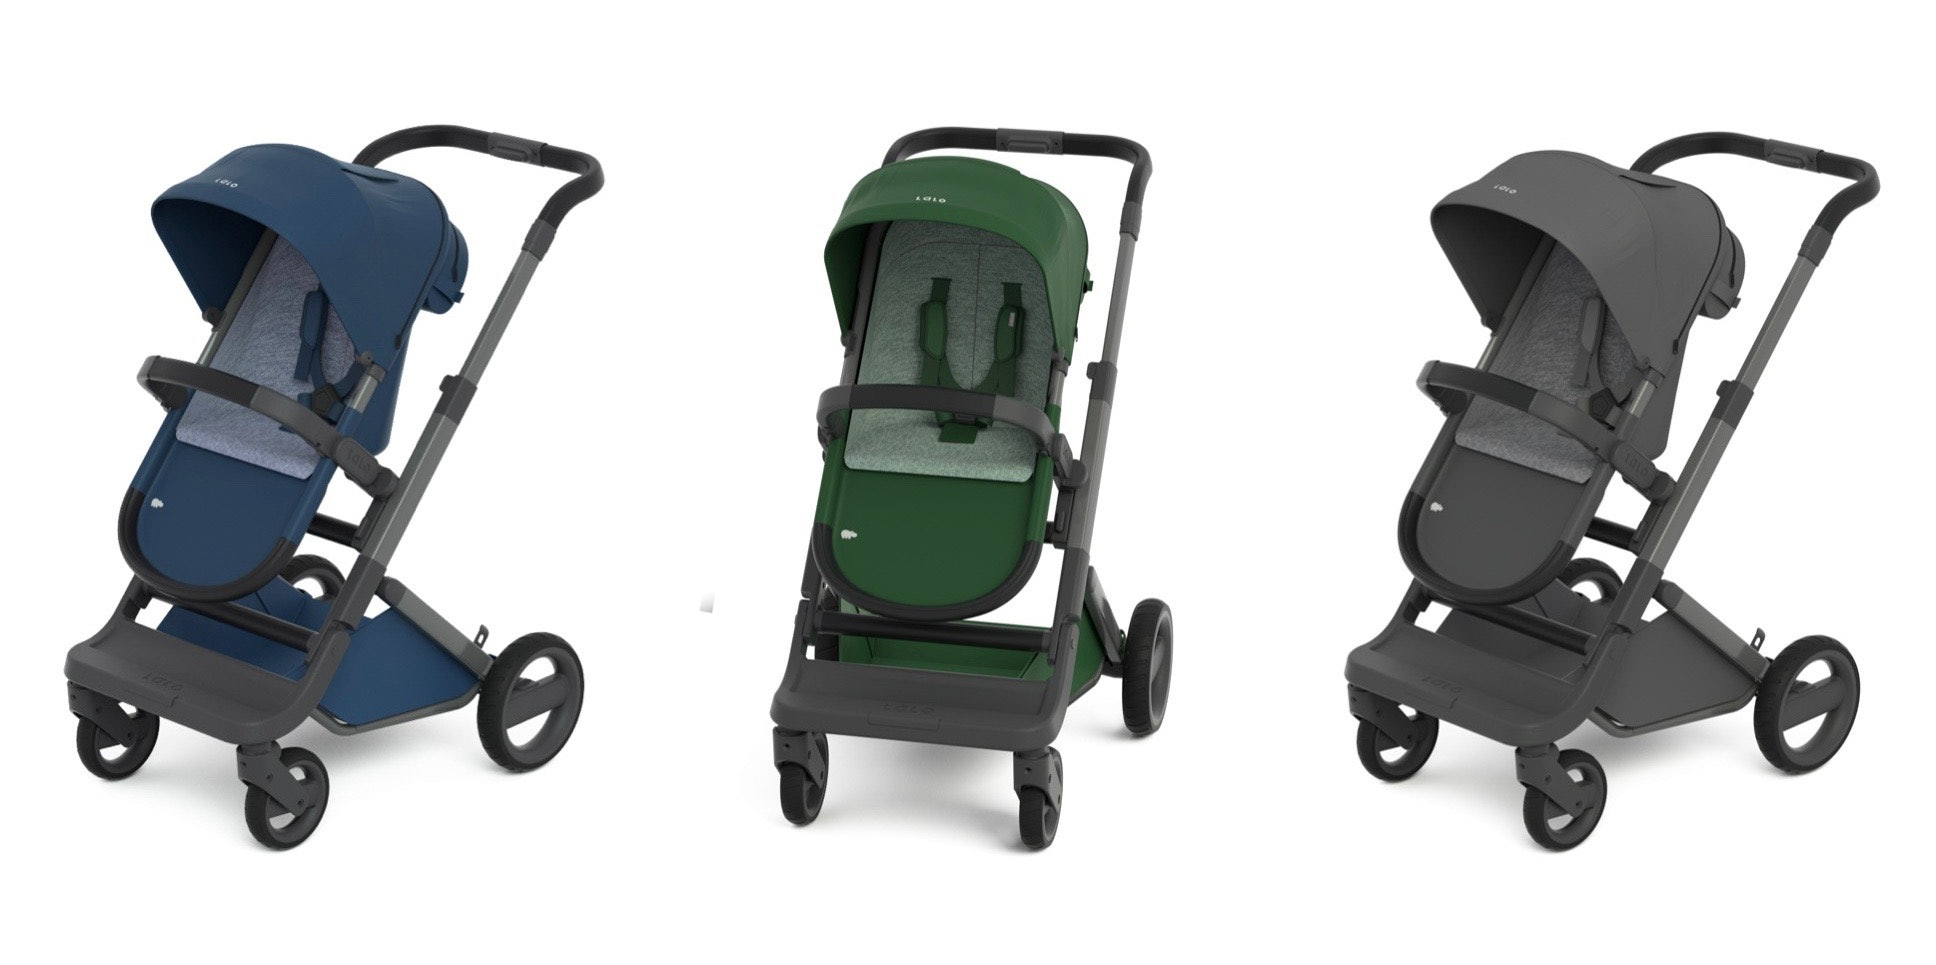 Nuna Stroller Recall Lalo S New Stroller Promises To Simplify The Shopping